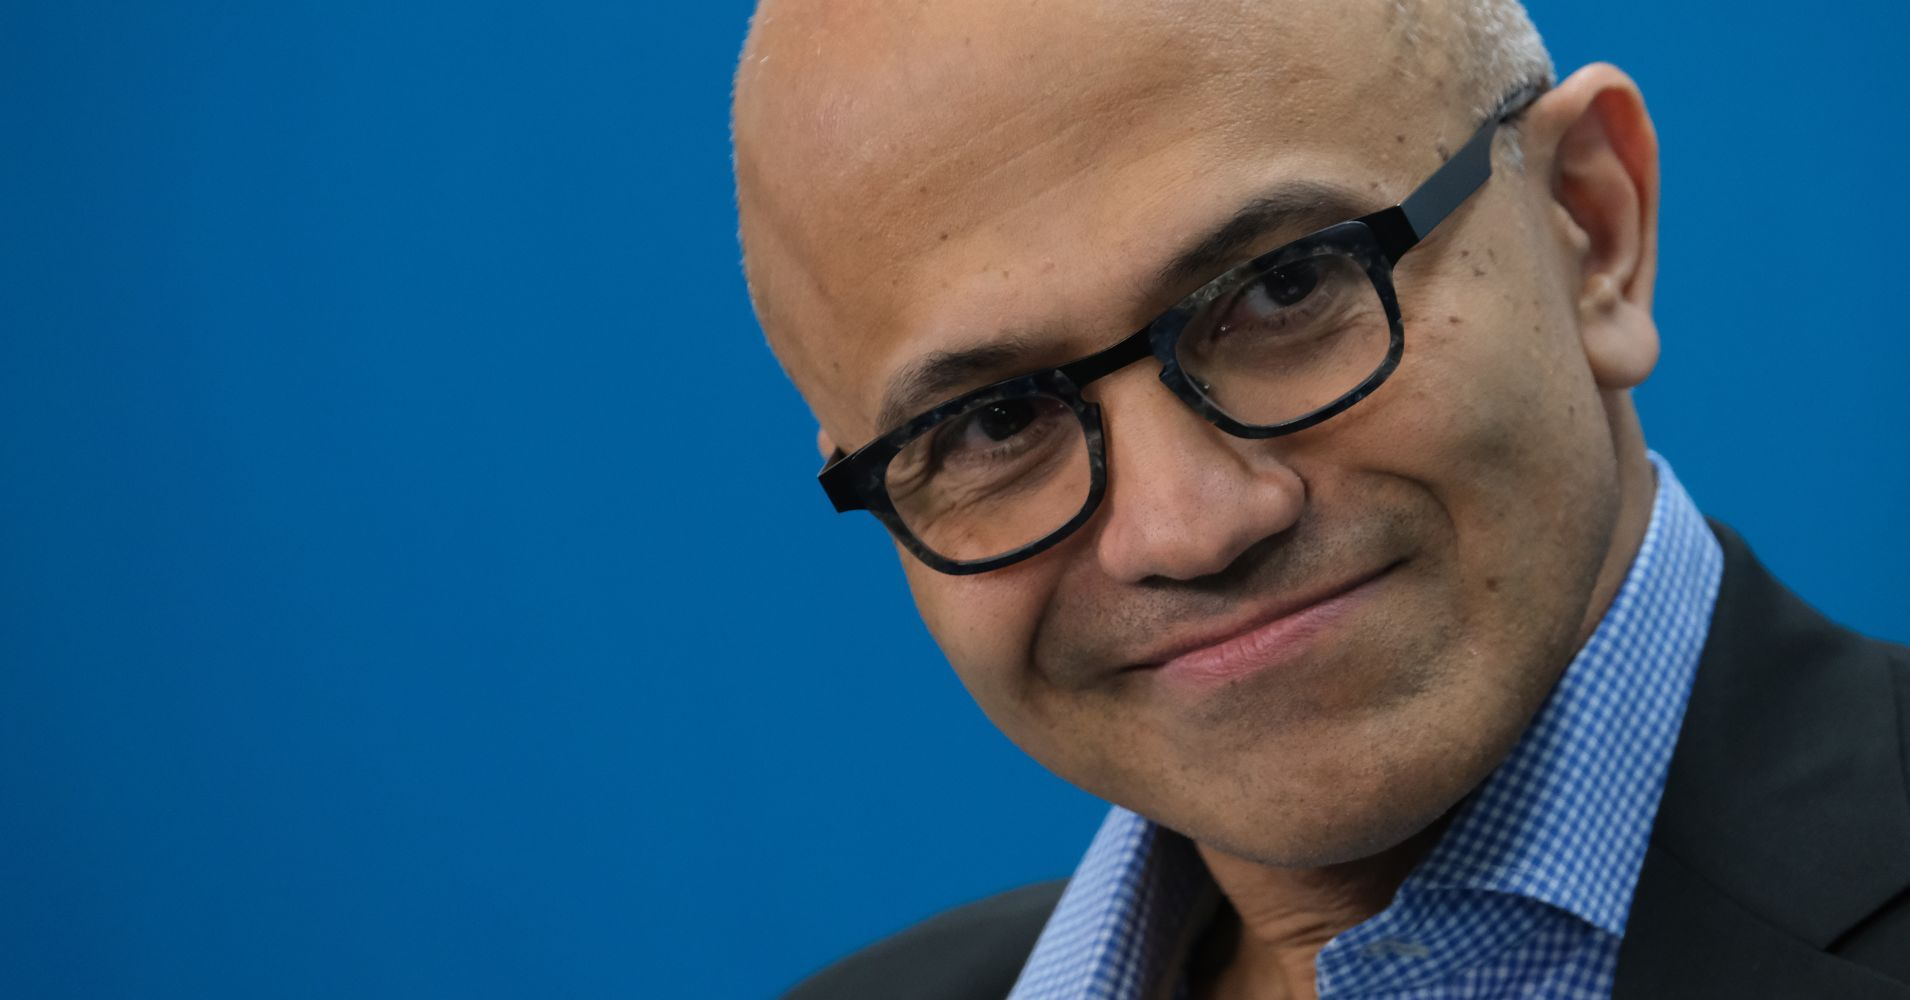 Microsoft is getting close to its goal of 1 billion